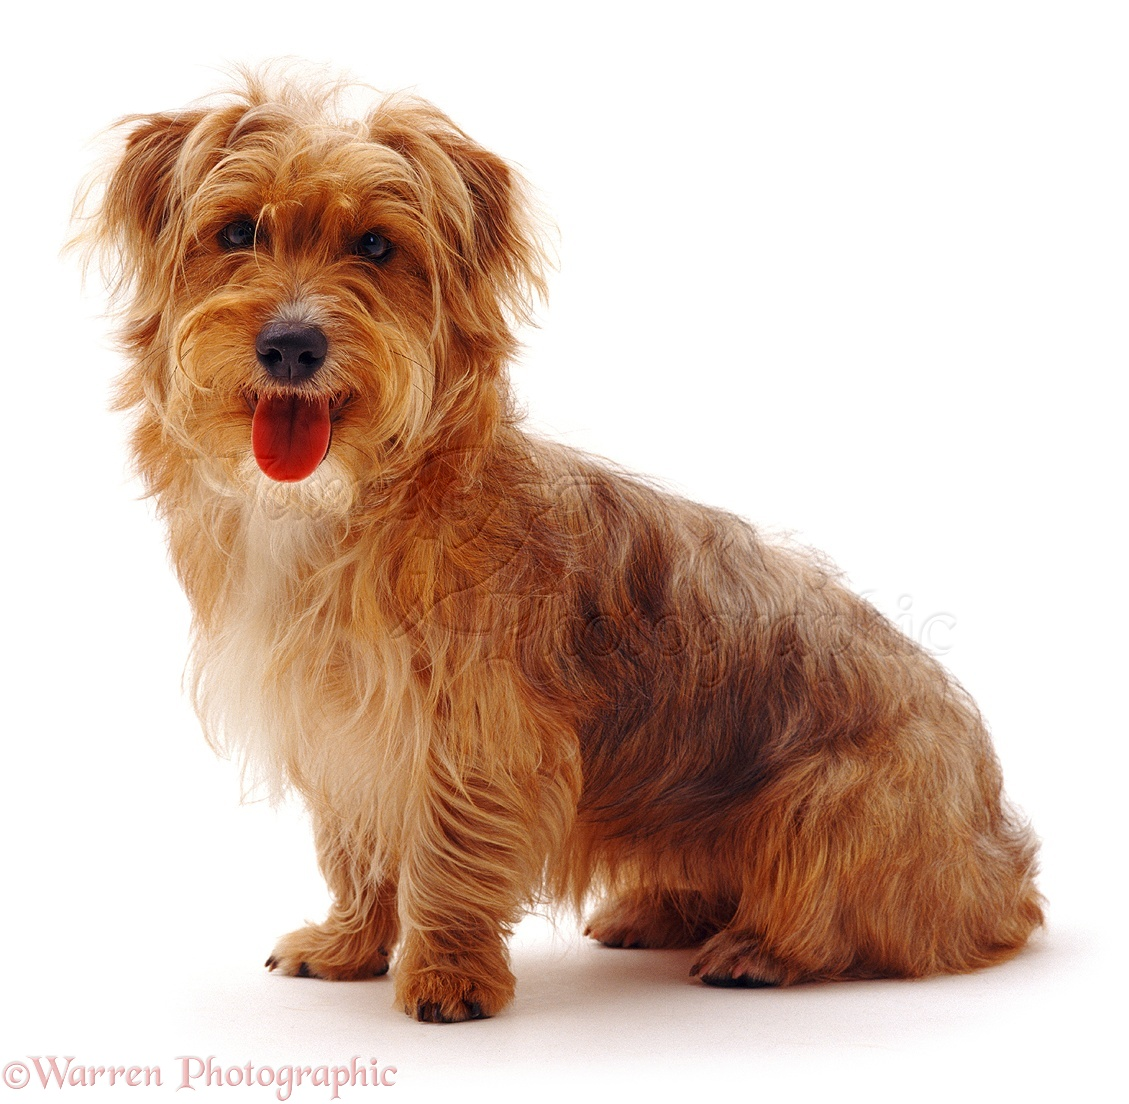 WP05217 Yorkshire Terrier x Jack Russell dog, Chip , 10 months old.